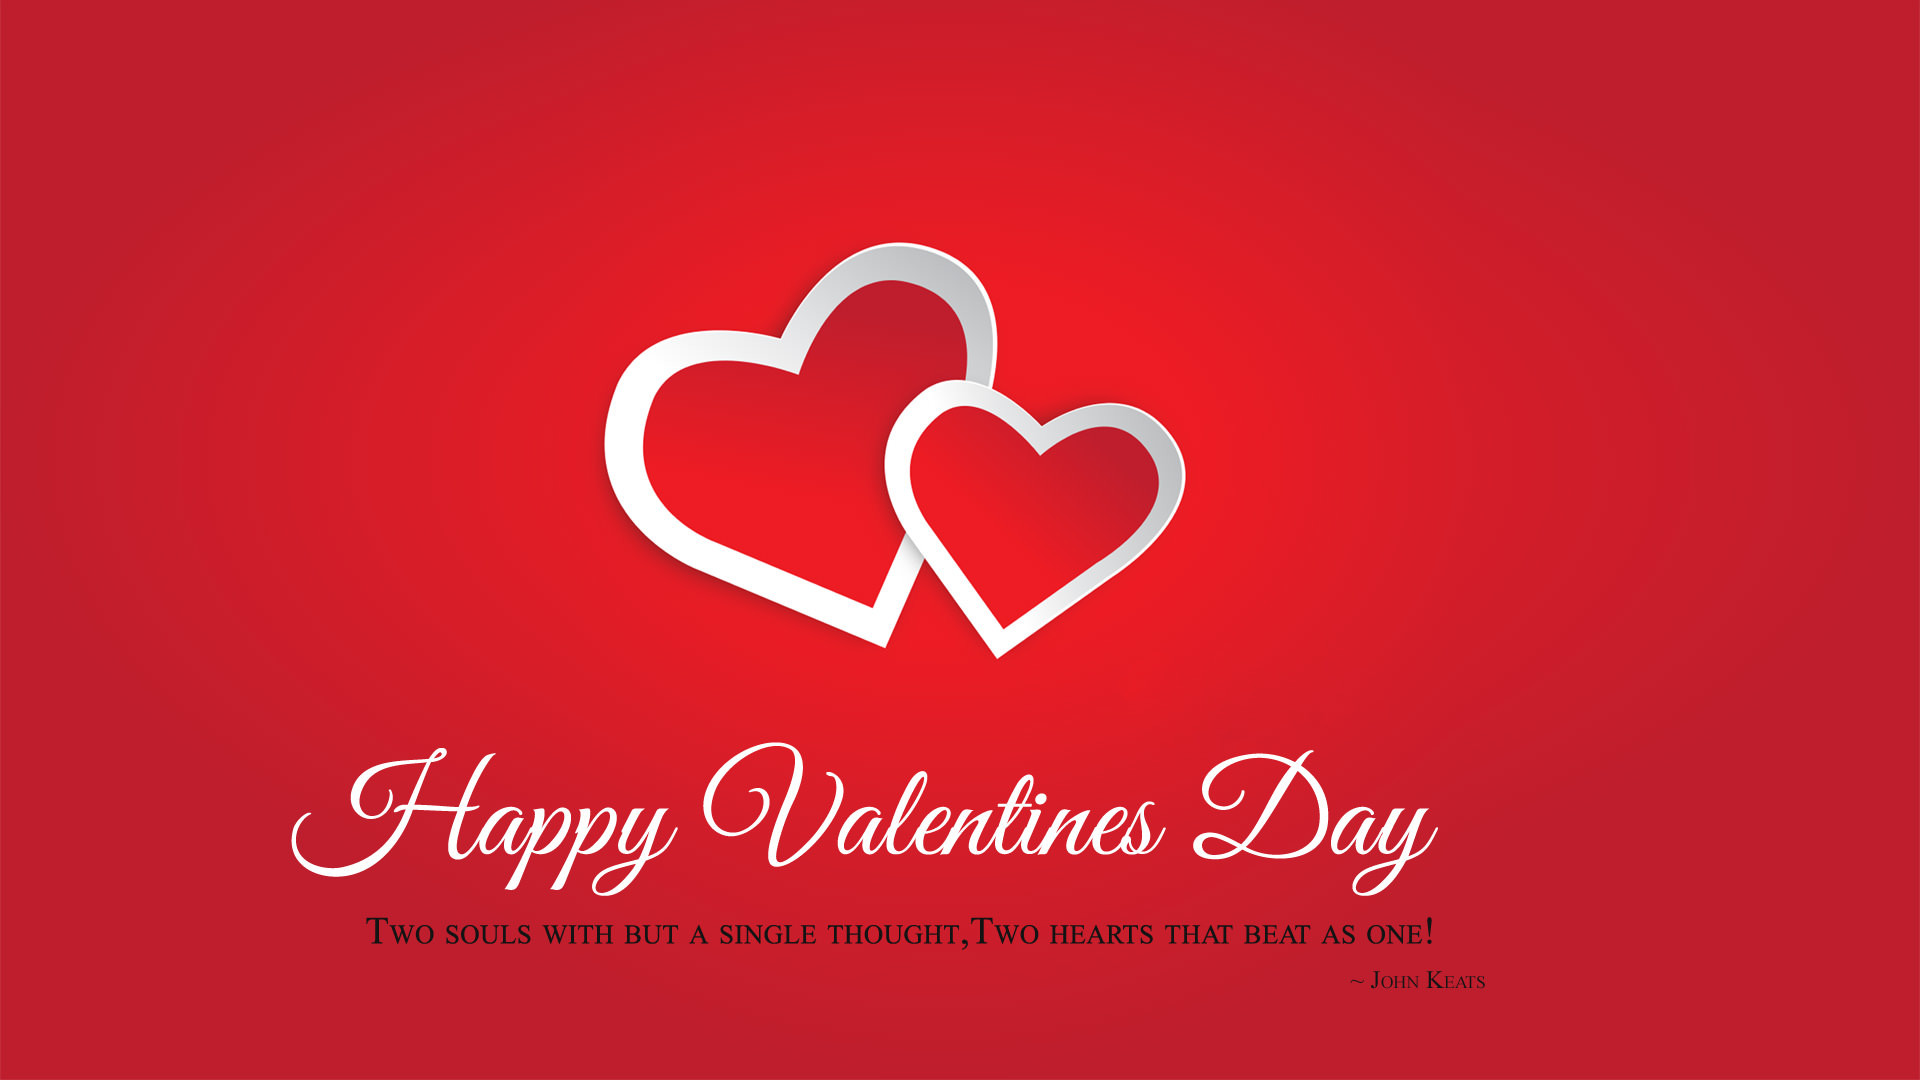 1920x1080 14 Feb Happy Valentines Day Wallpaper, Free HD Love Images Special Valentine  Wallpaper